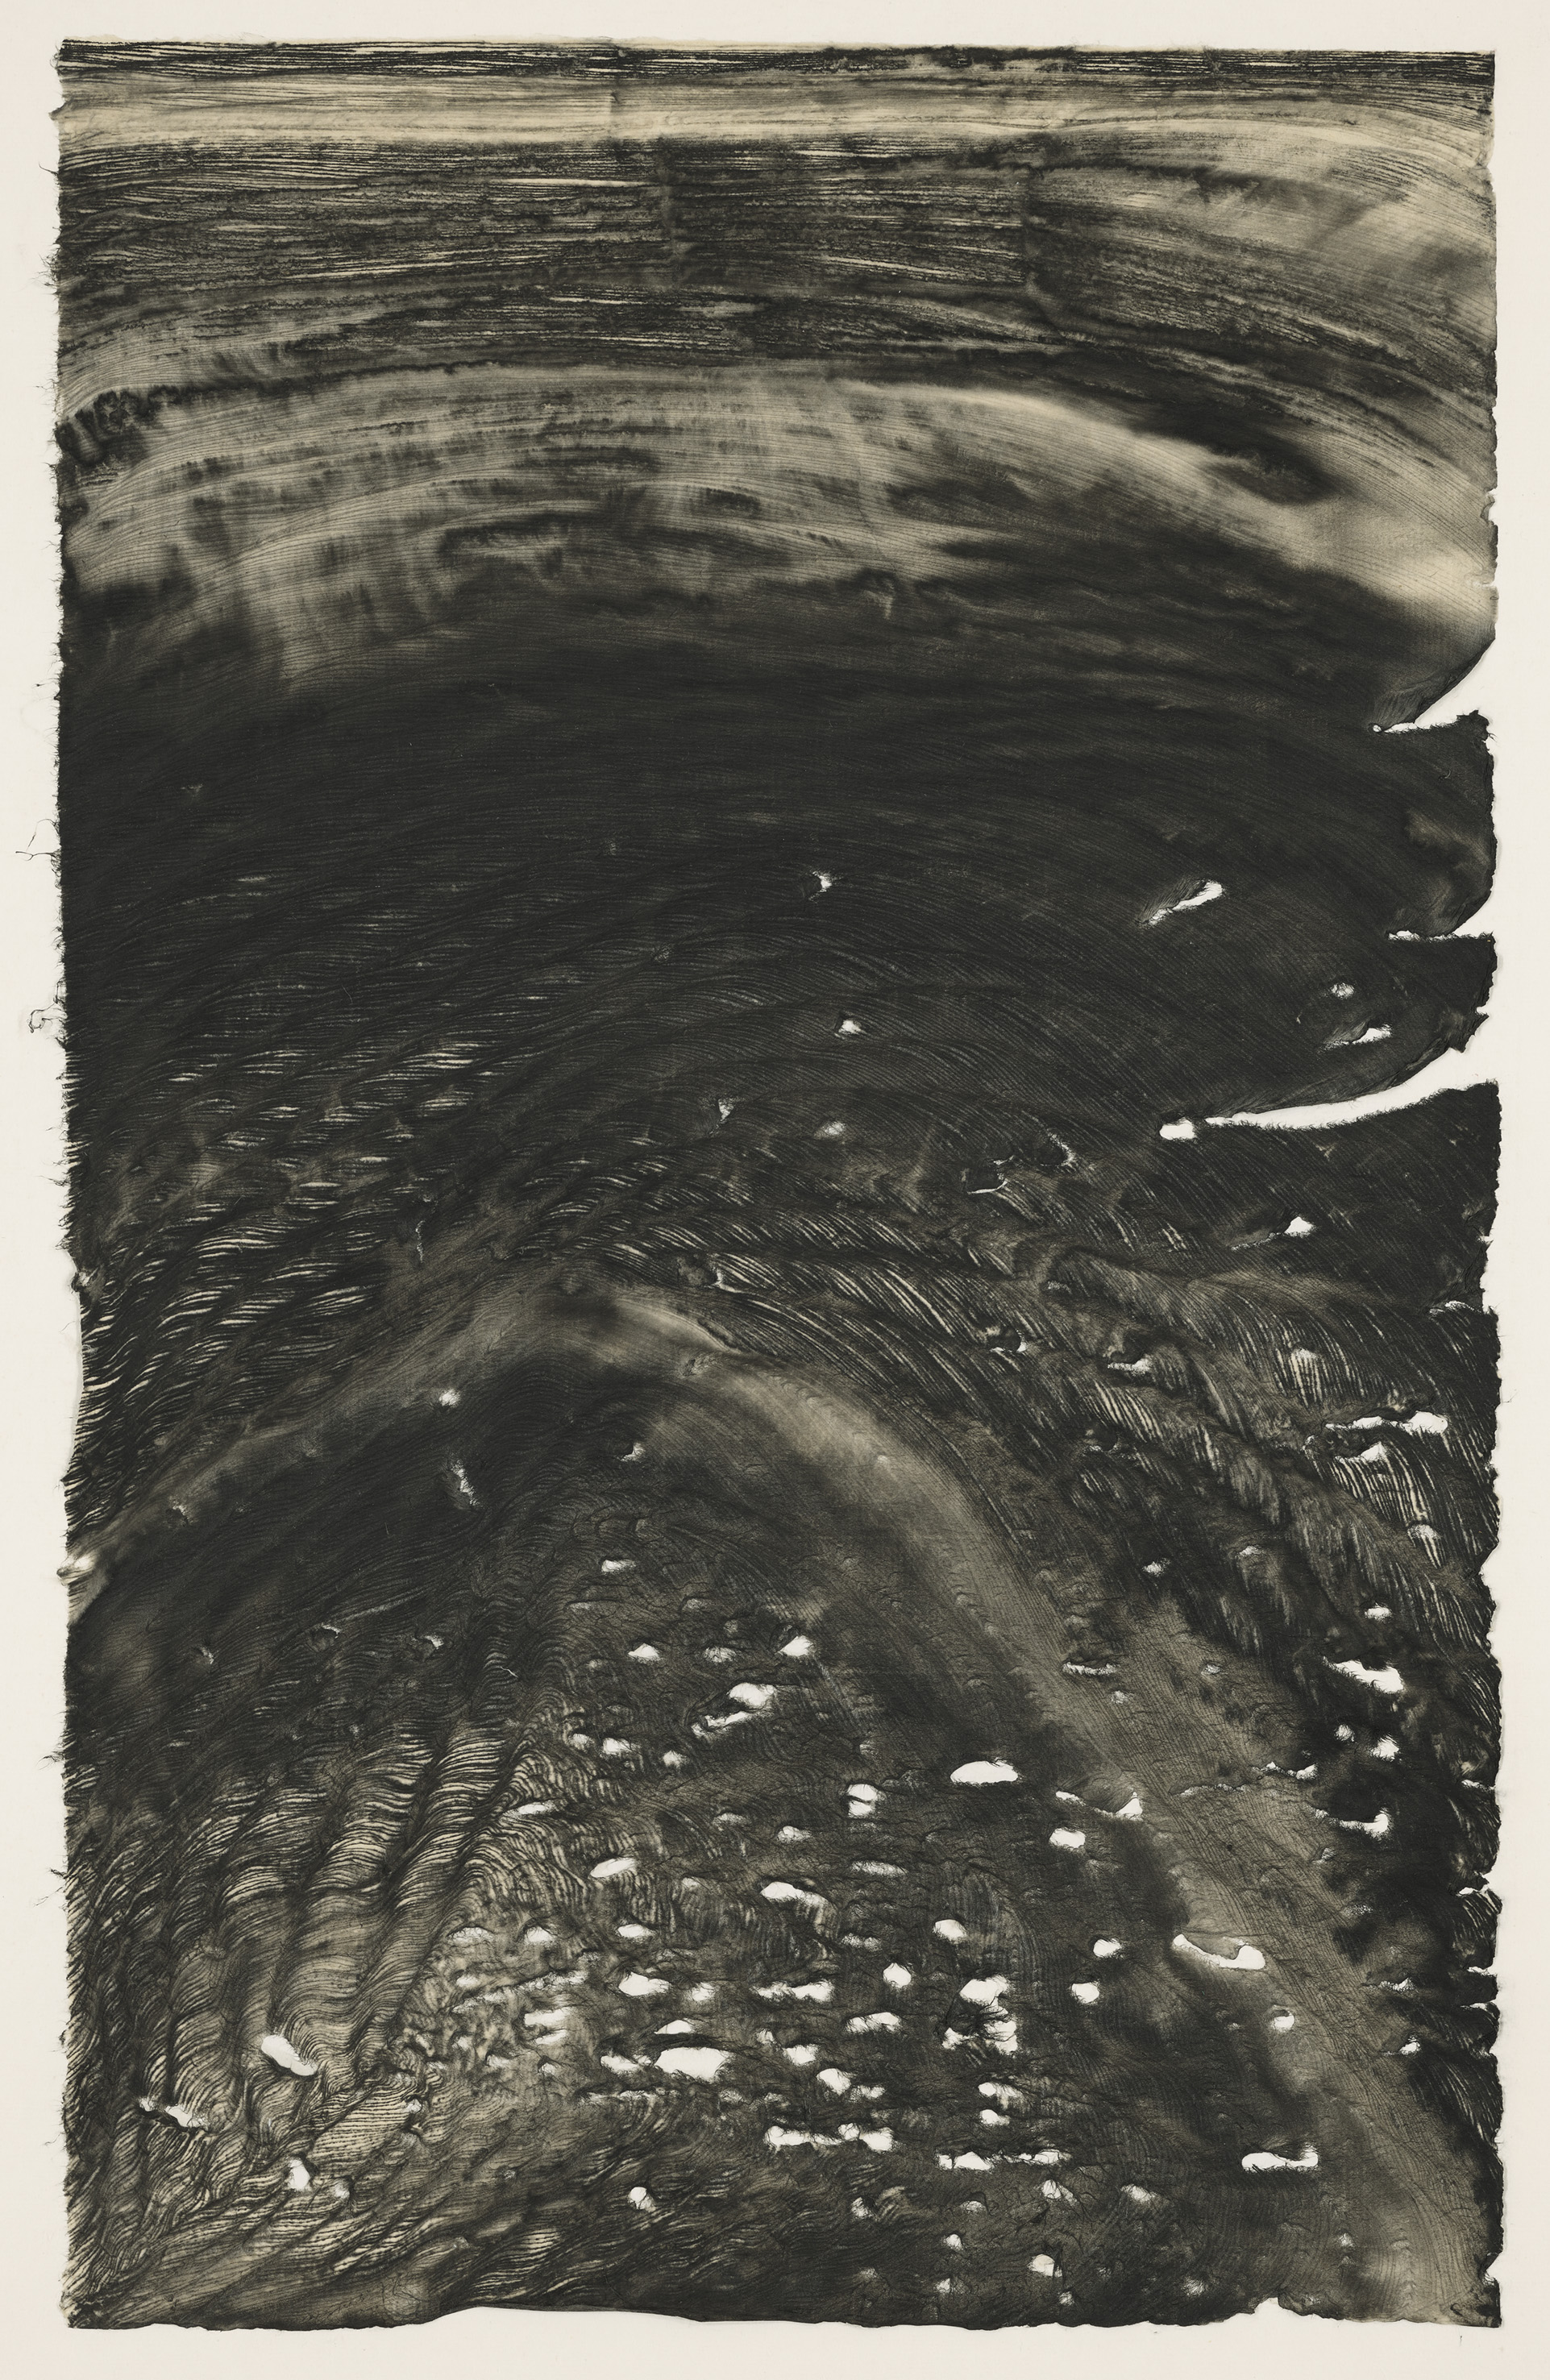 126a-a-rhythm-of-landscape-12-ink-on-paper-49-5cm-height-x-31-5cm-width-2020